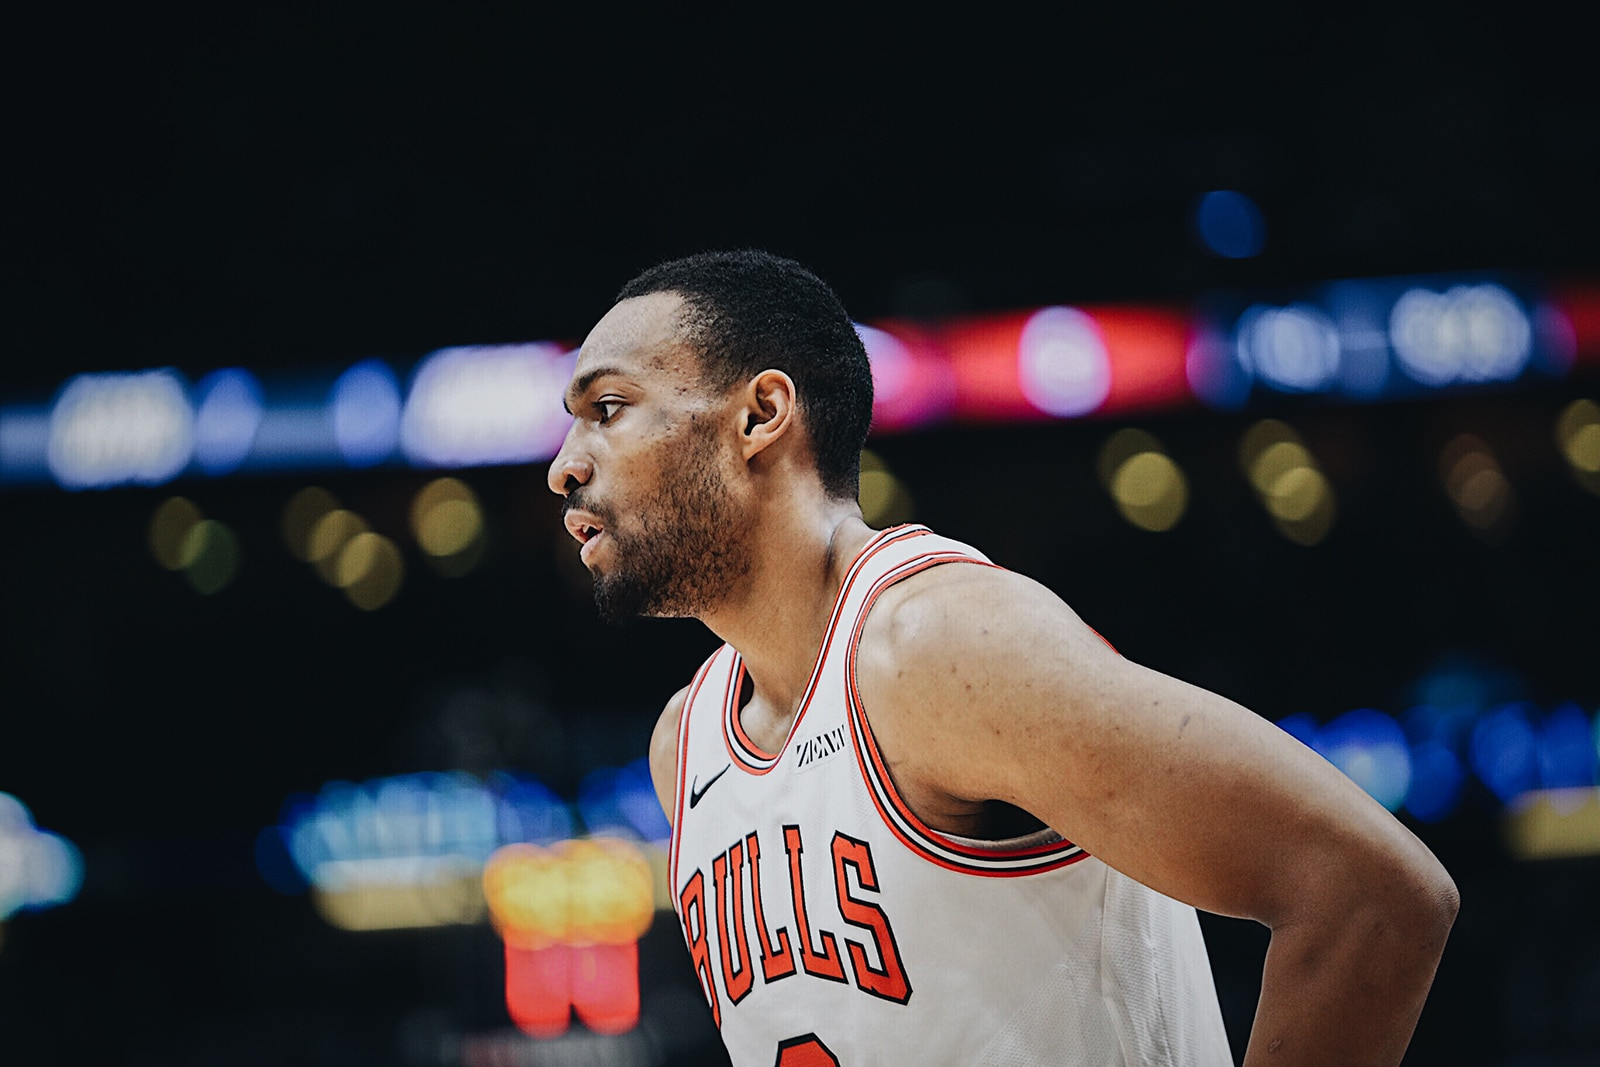 Jabari Parker of the Chicago Bulls